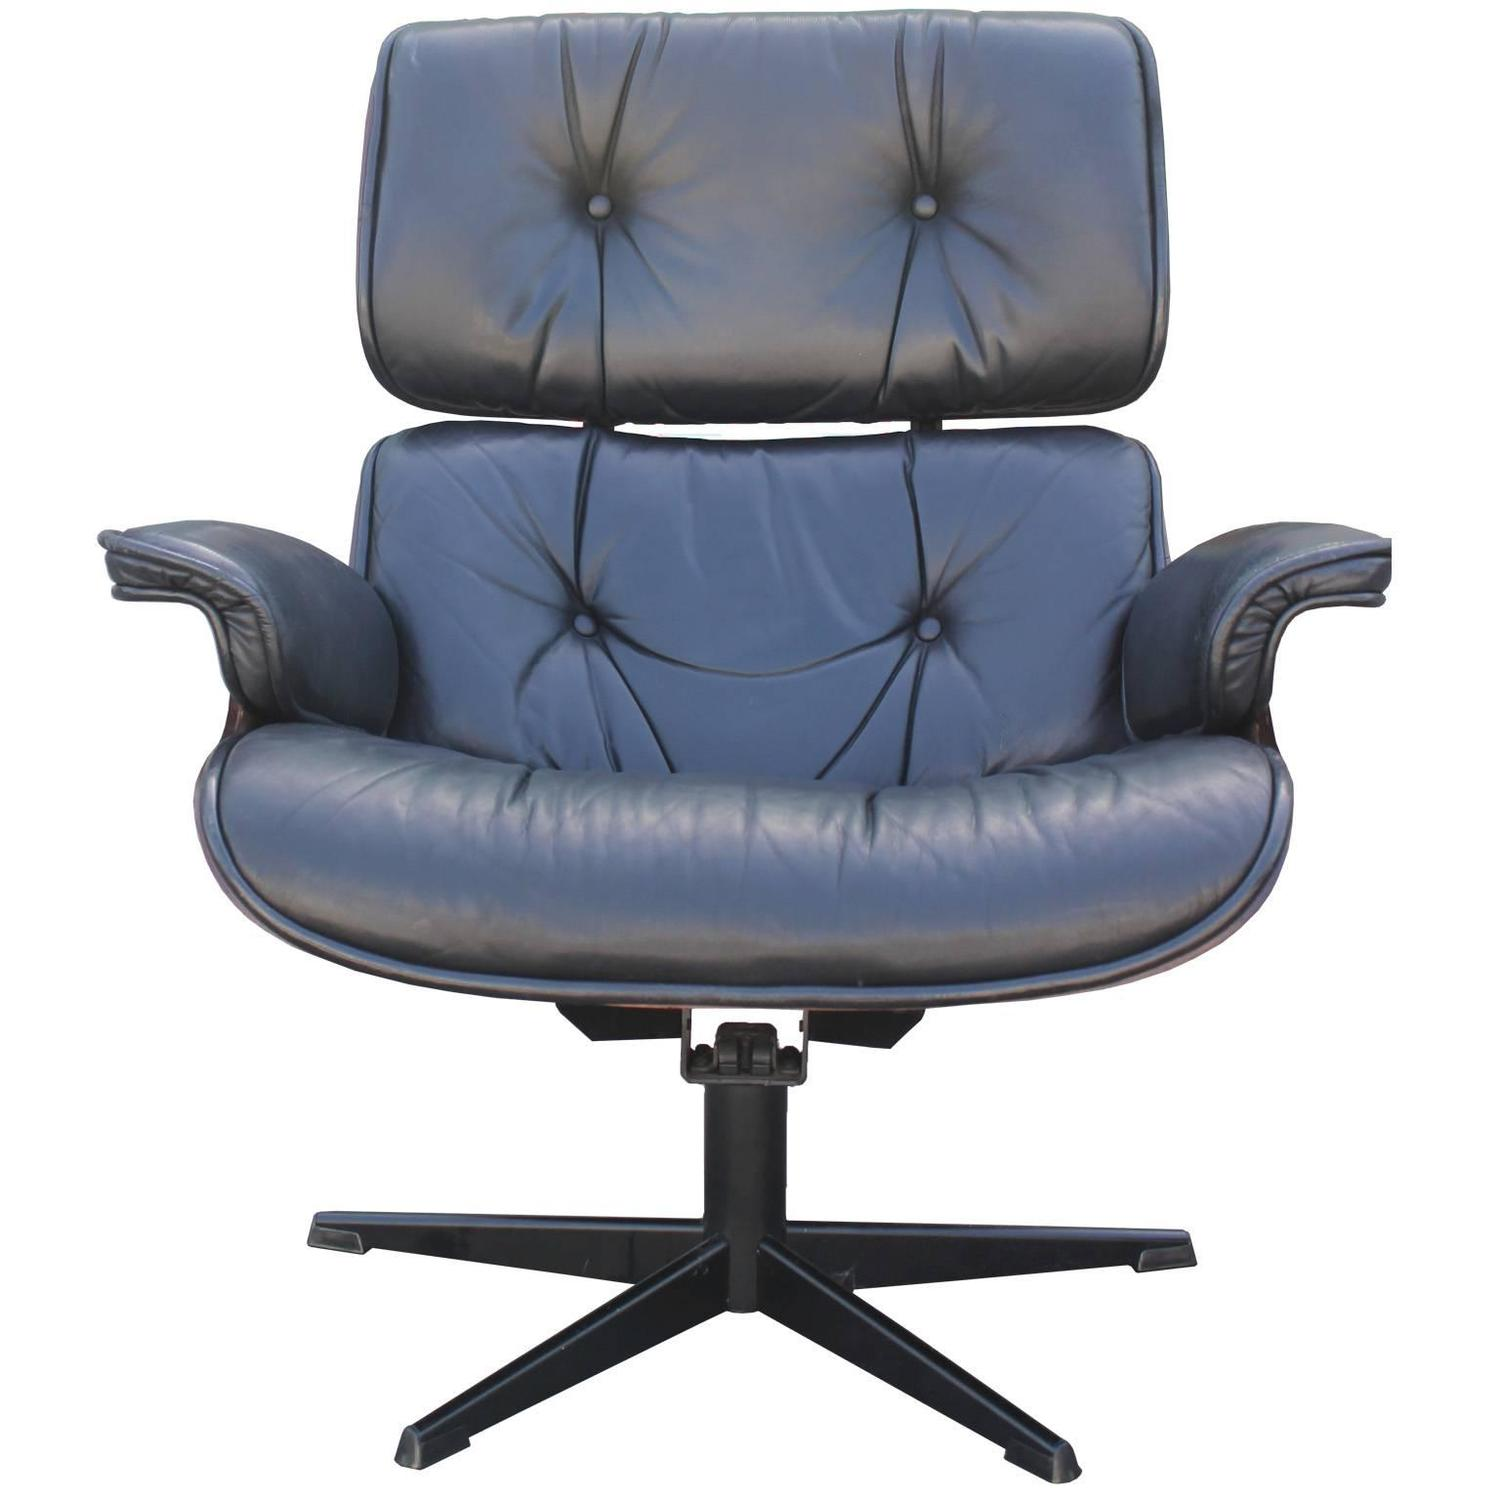 Iconic eames style lounge chair and ottoman at 1stdibs Iconic eames chair